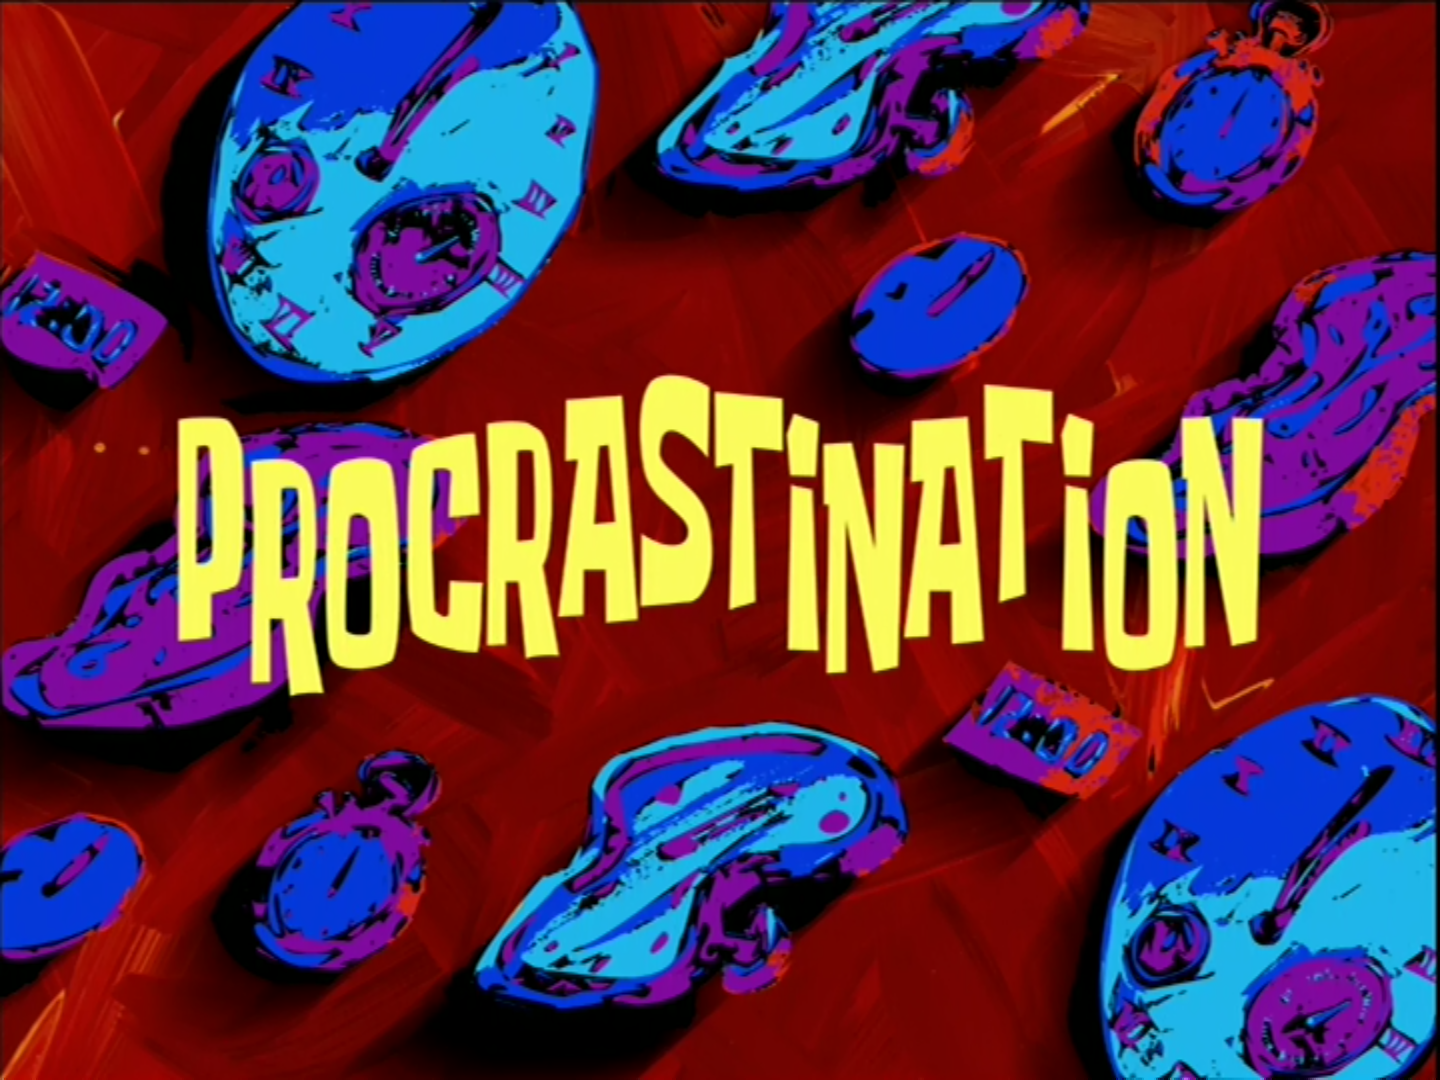 009 Procrastinationtranscript Encyclopedia Spongebobia Fandom Spongebob Writing Essay The Latestcb201806220 Gif Font For Hours Meme Rap Surprising Writes An Full Episode Generator Deleted Scene Full